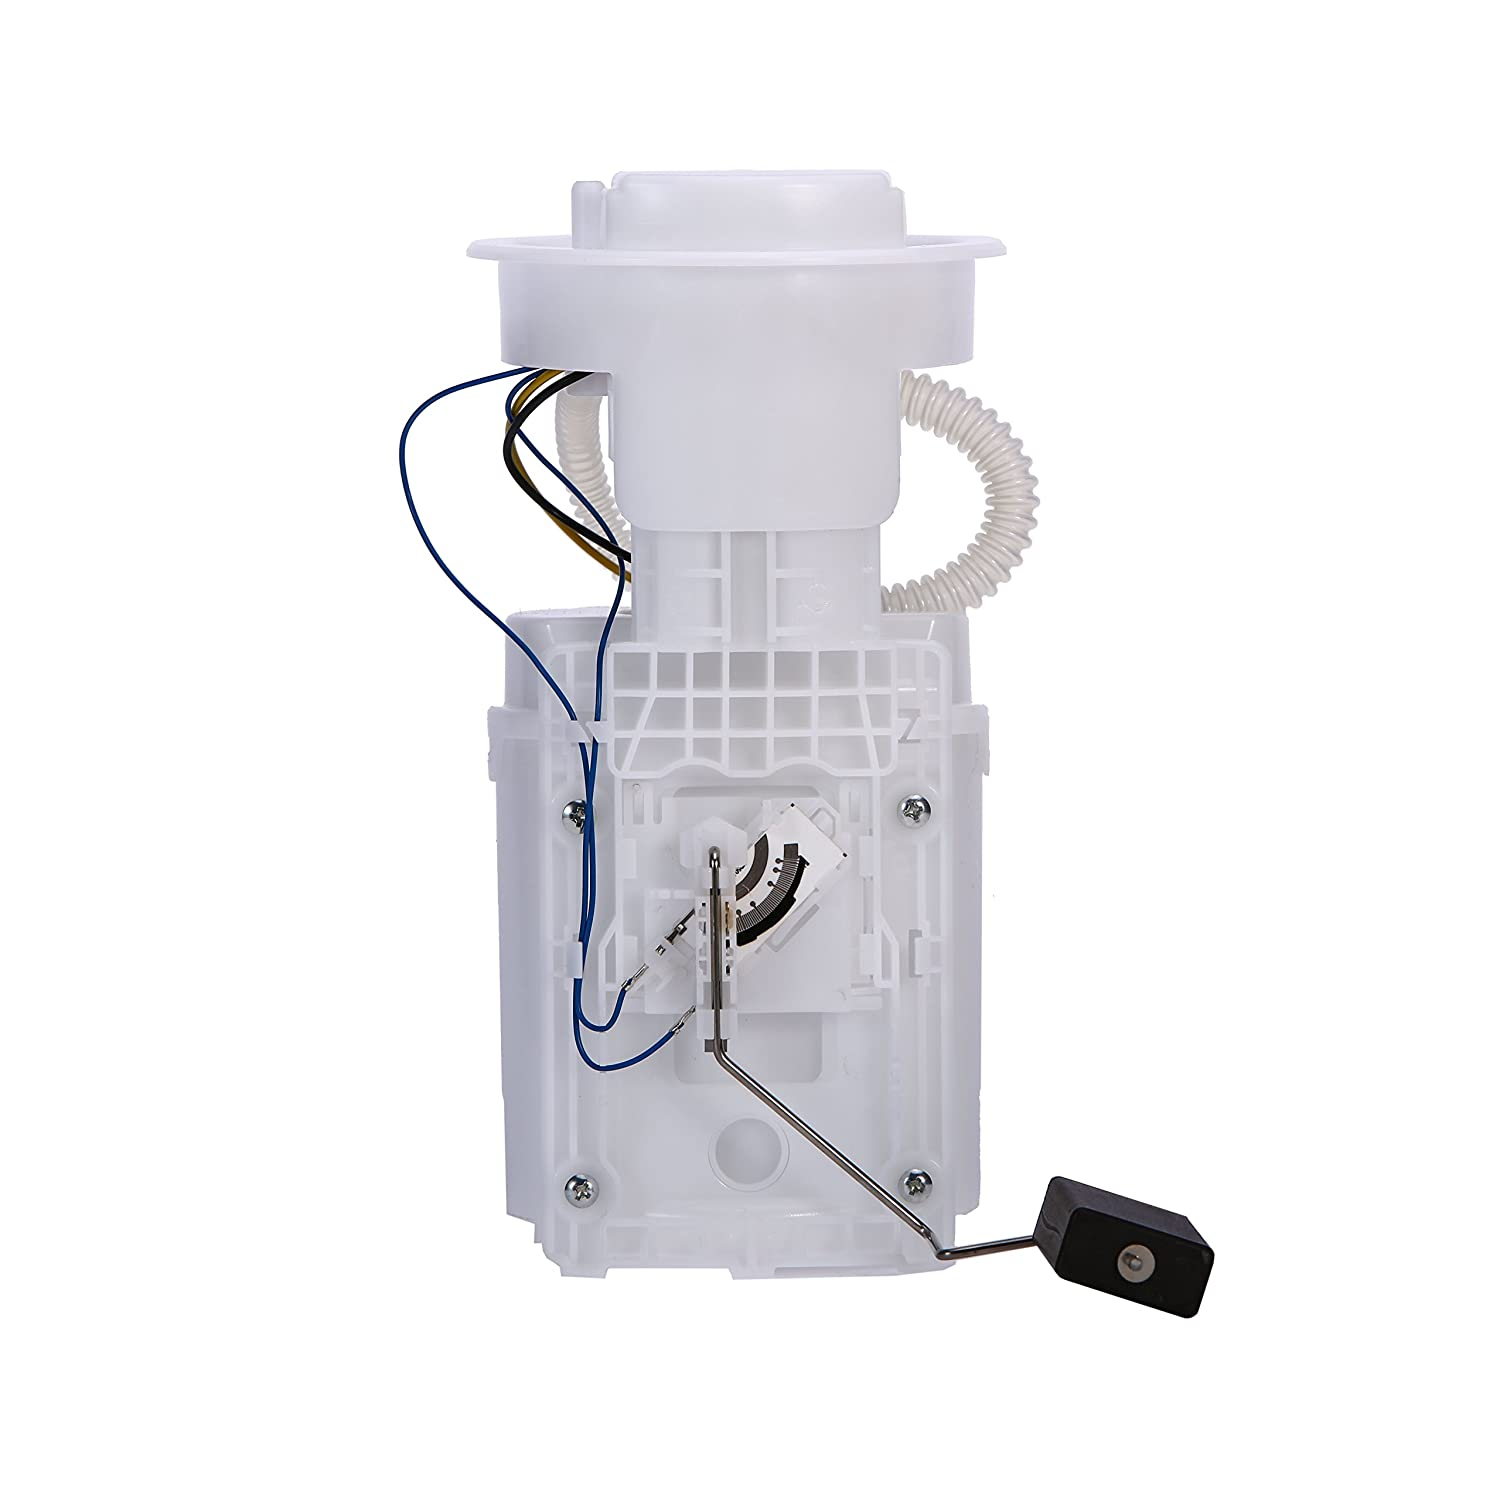 Fuel Pump FP382157 - In Tank Universal Electric Fuel Pump Installation Kit with Strainer TOPSCOPE